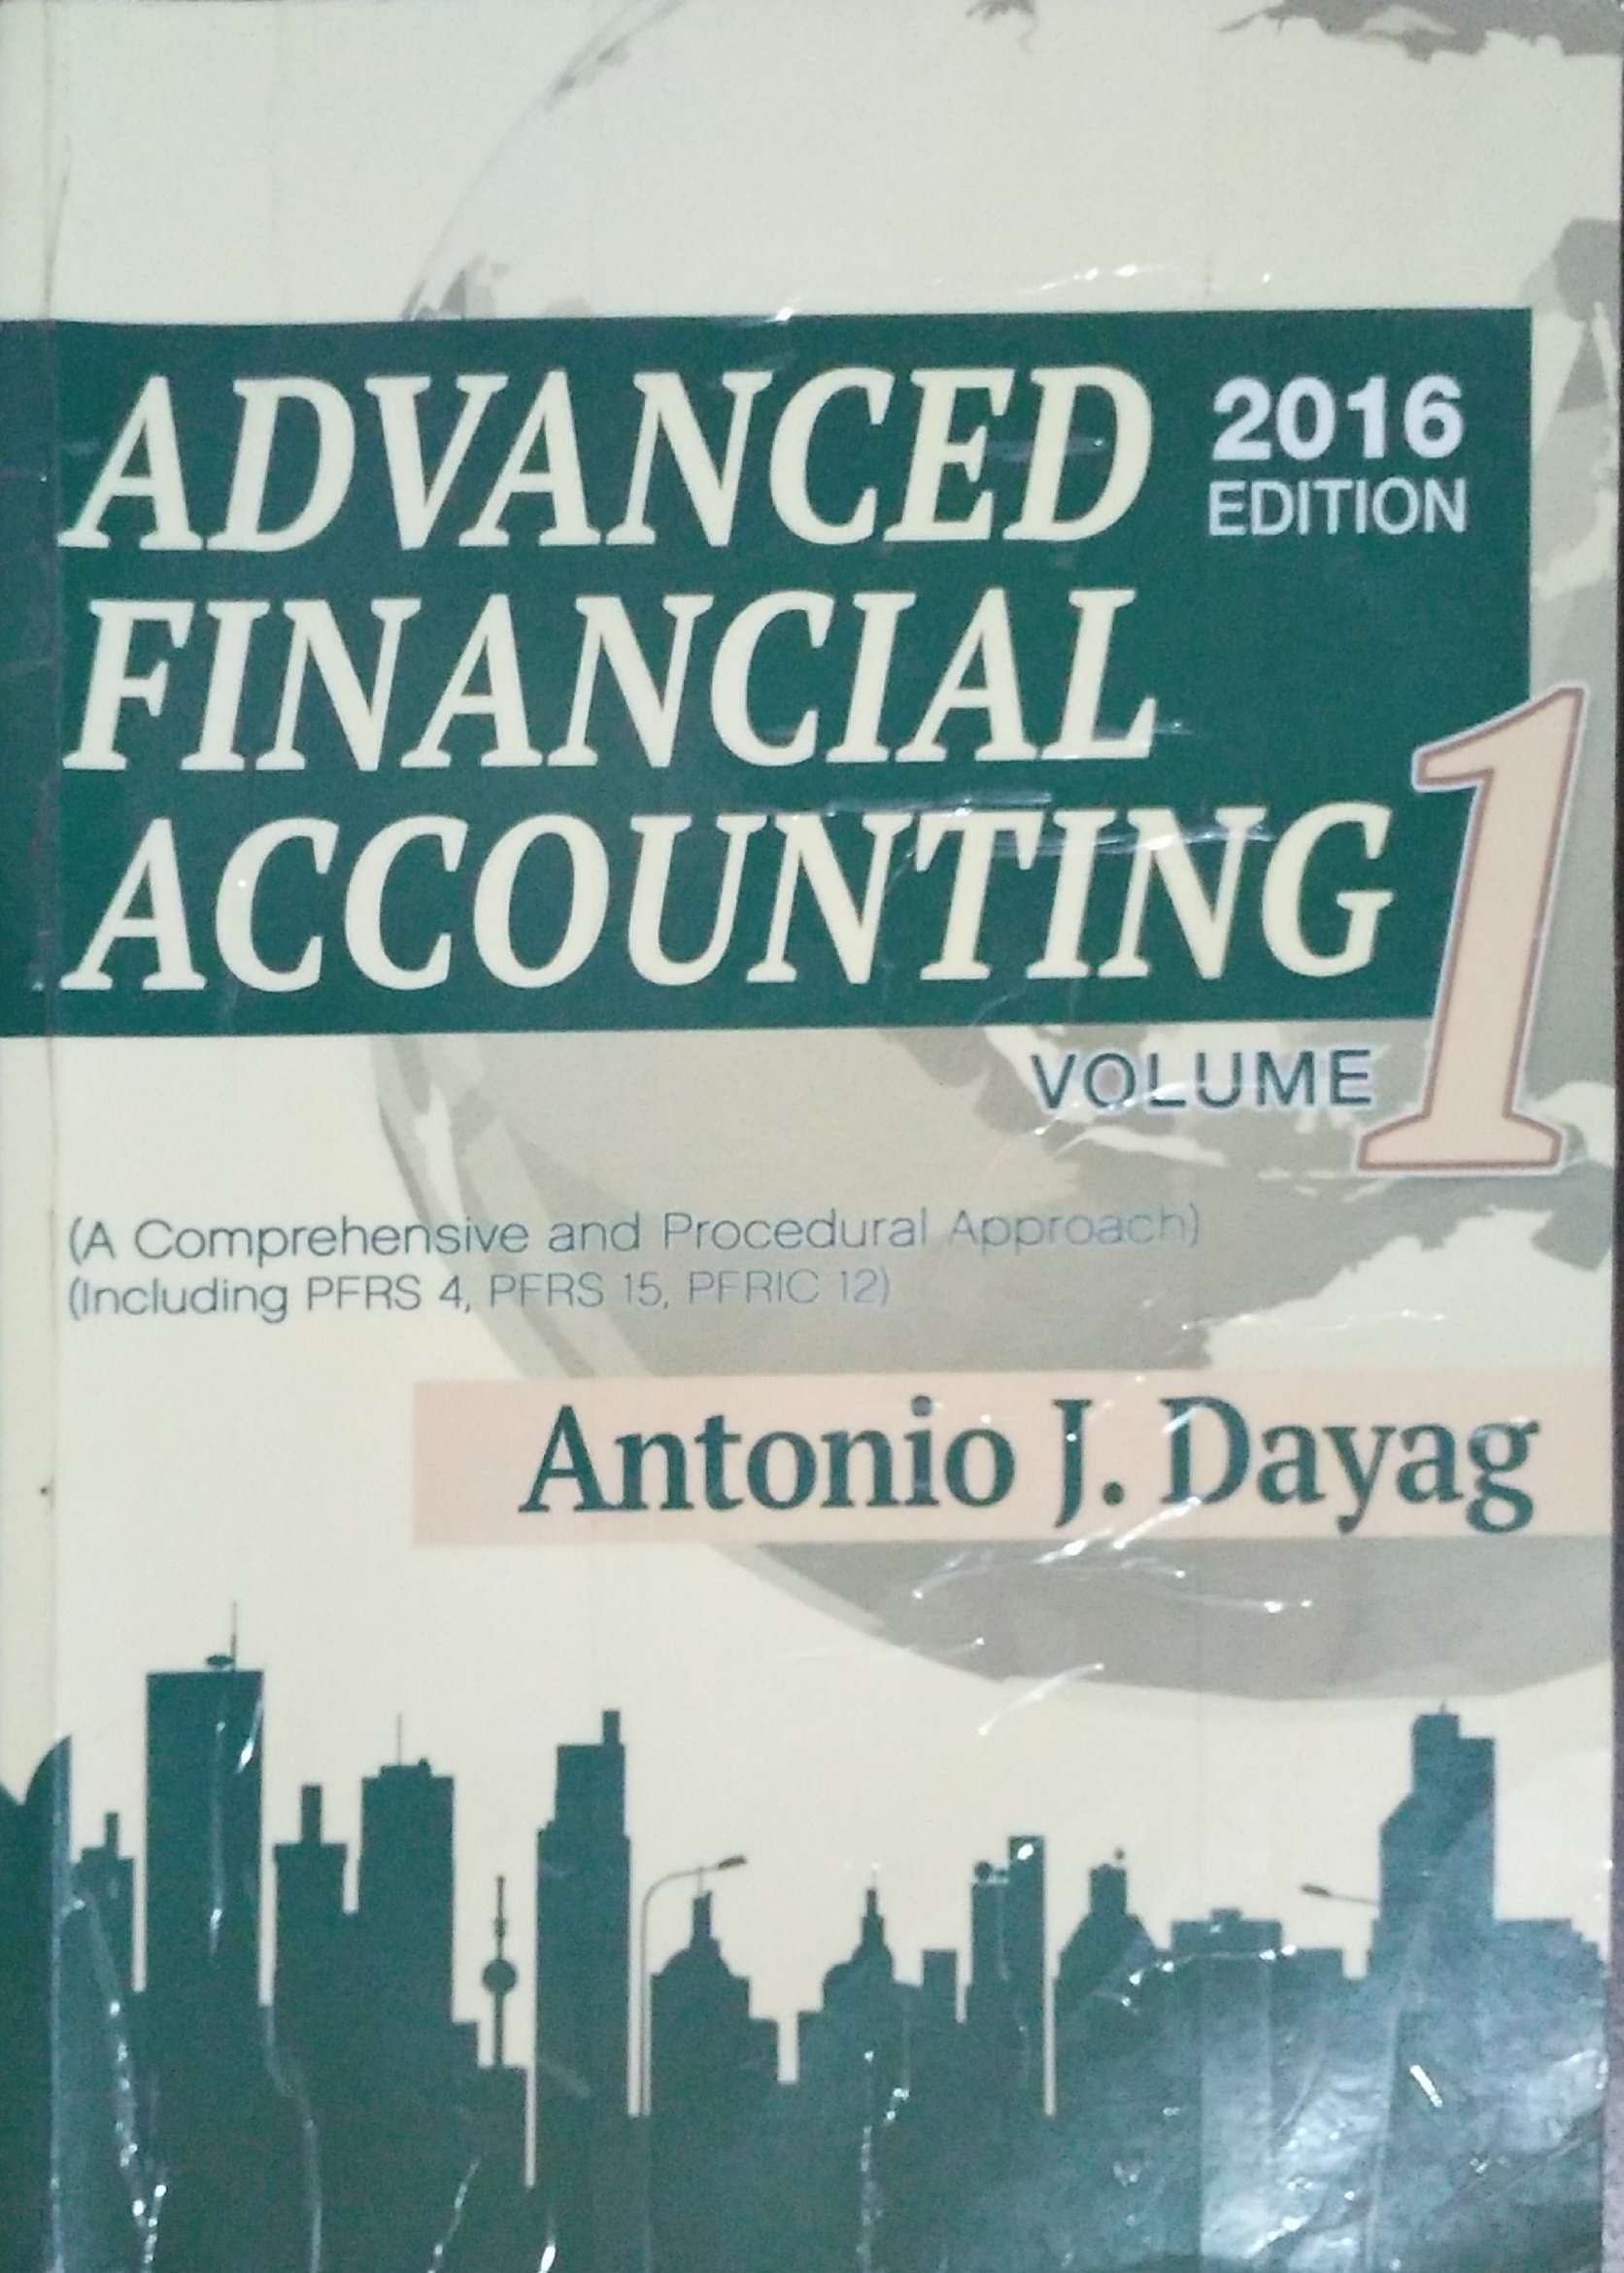 Advanced Financial Accounting, 7th Edition